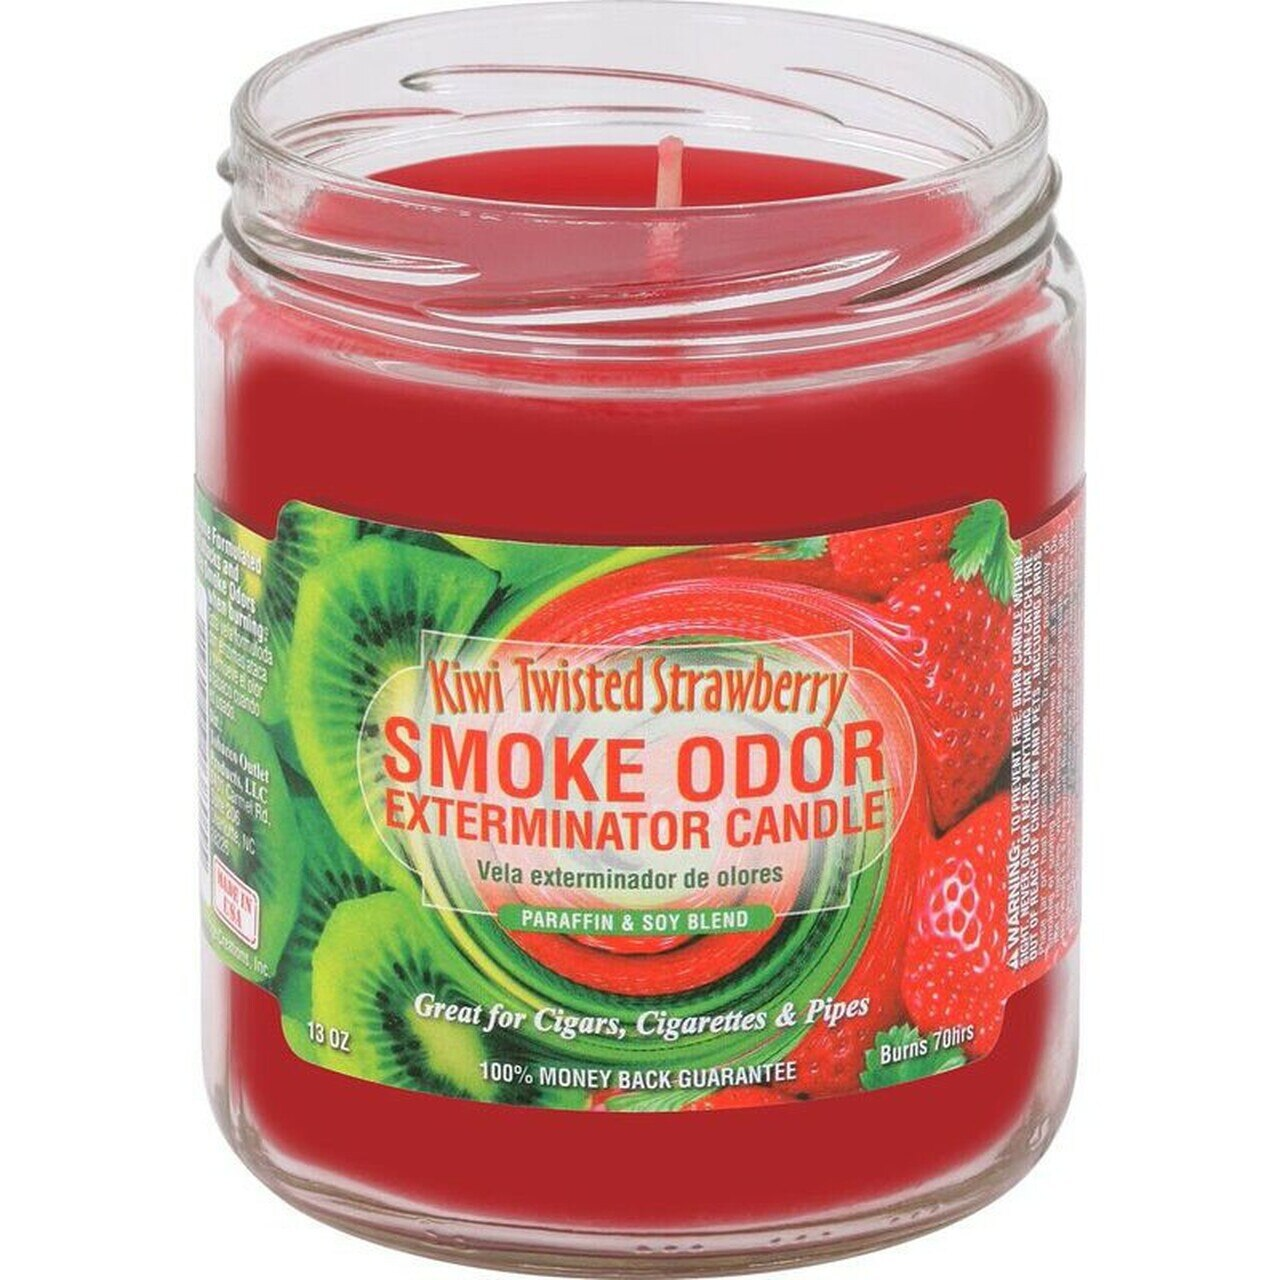 Smoke Odor - Kiwi Twisted Strawberry